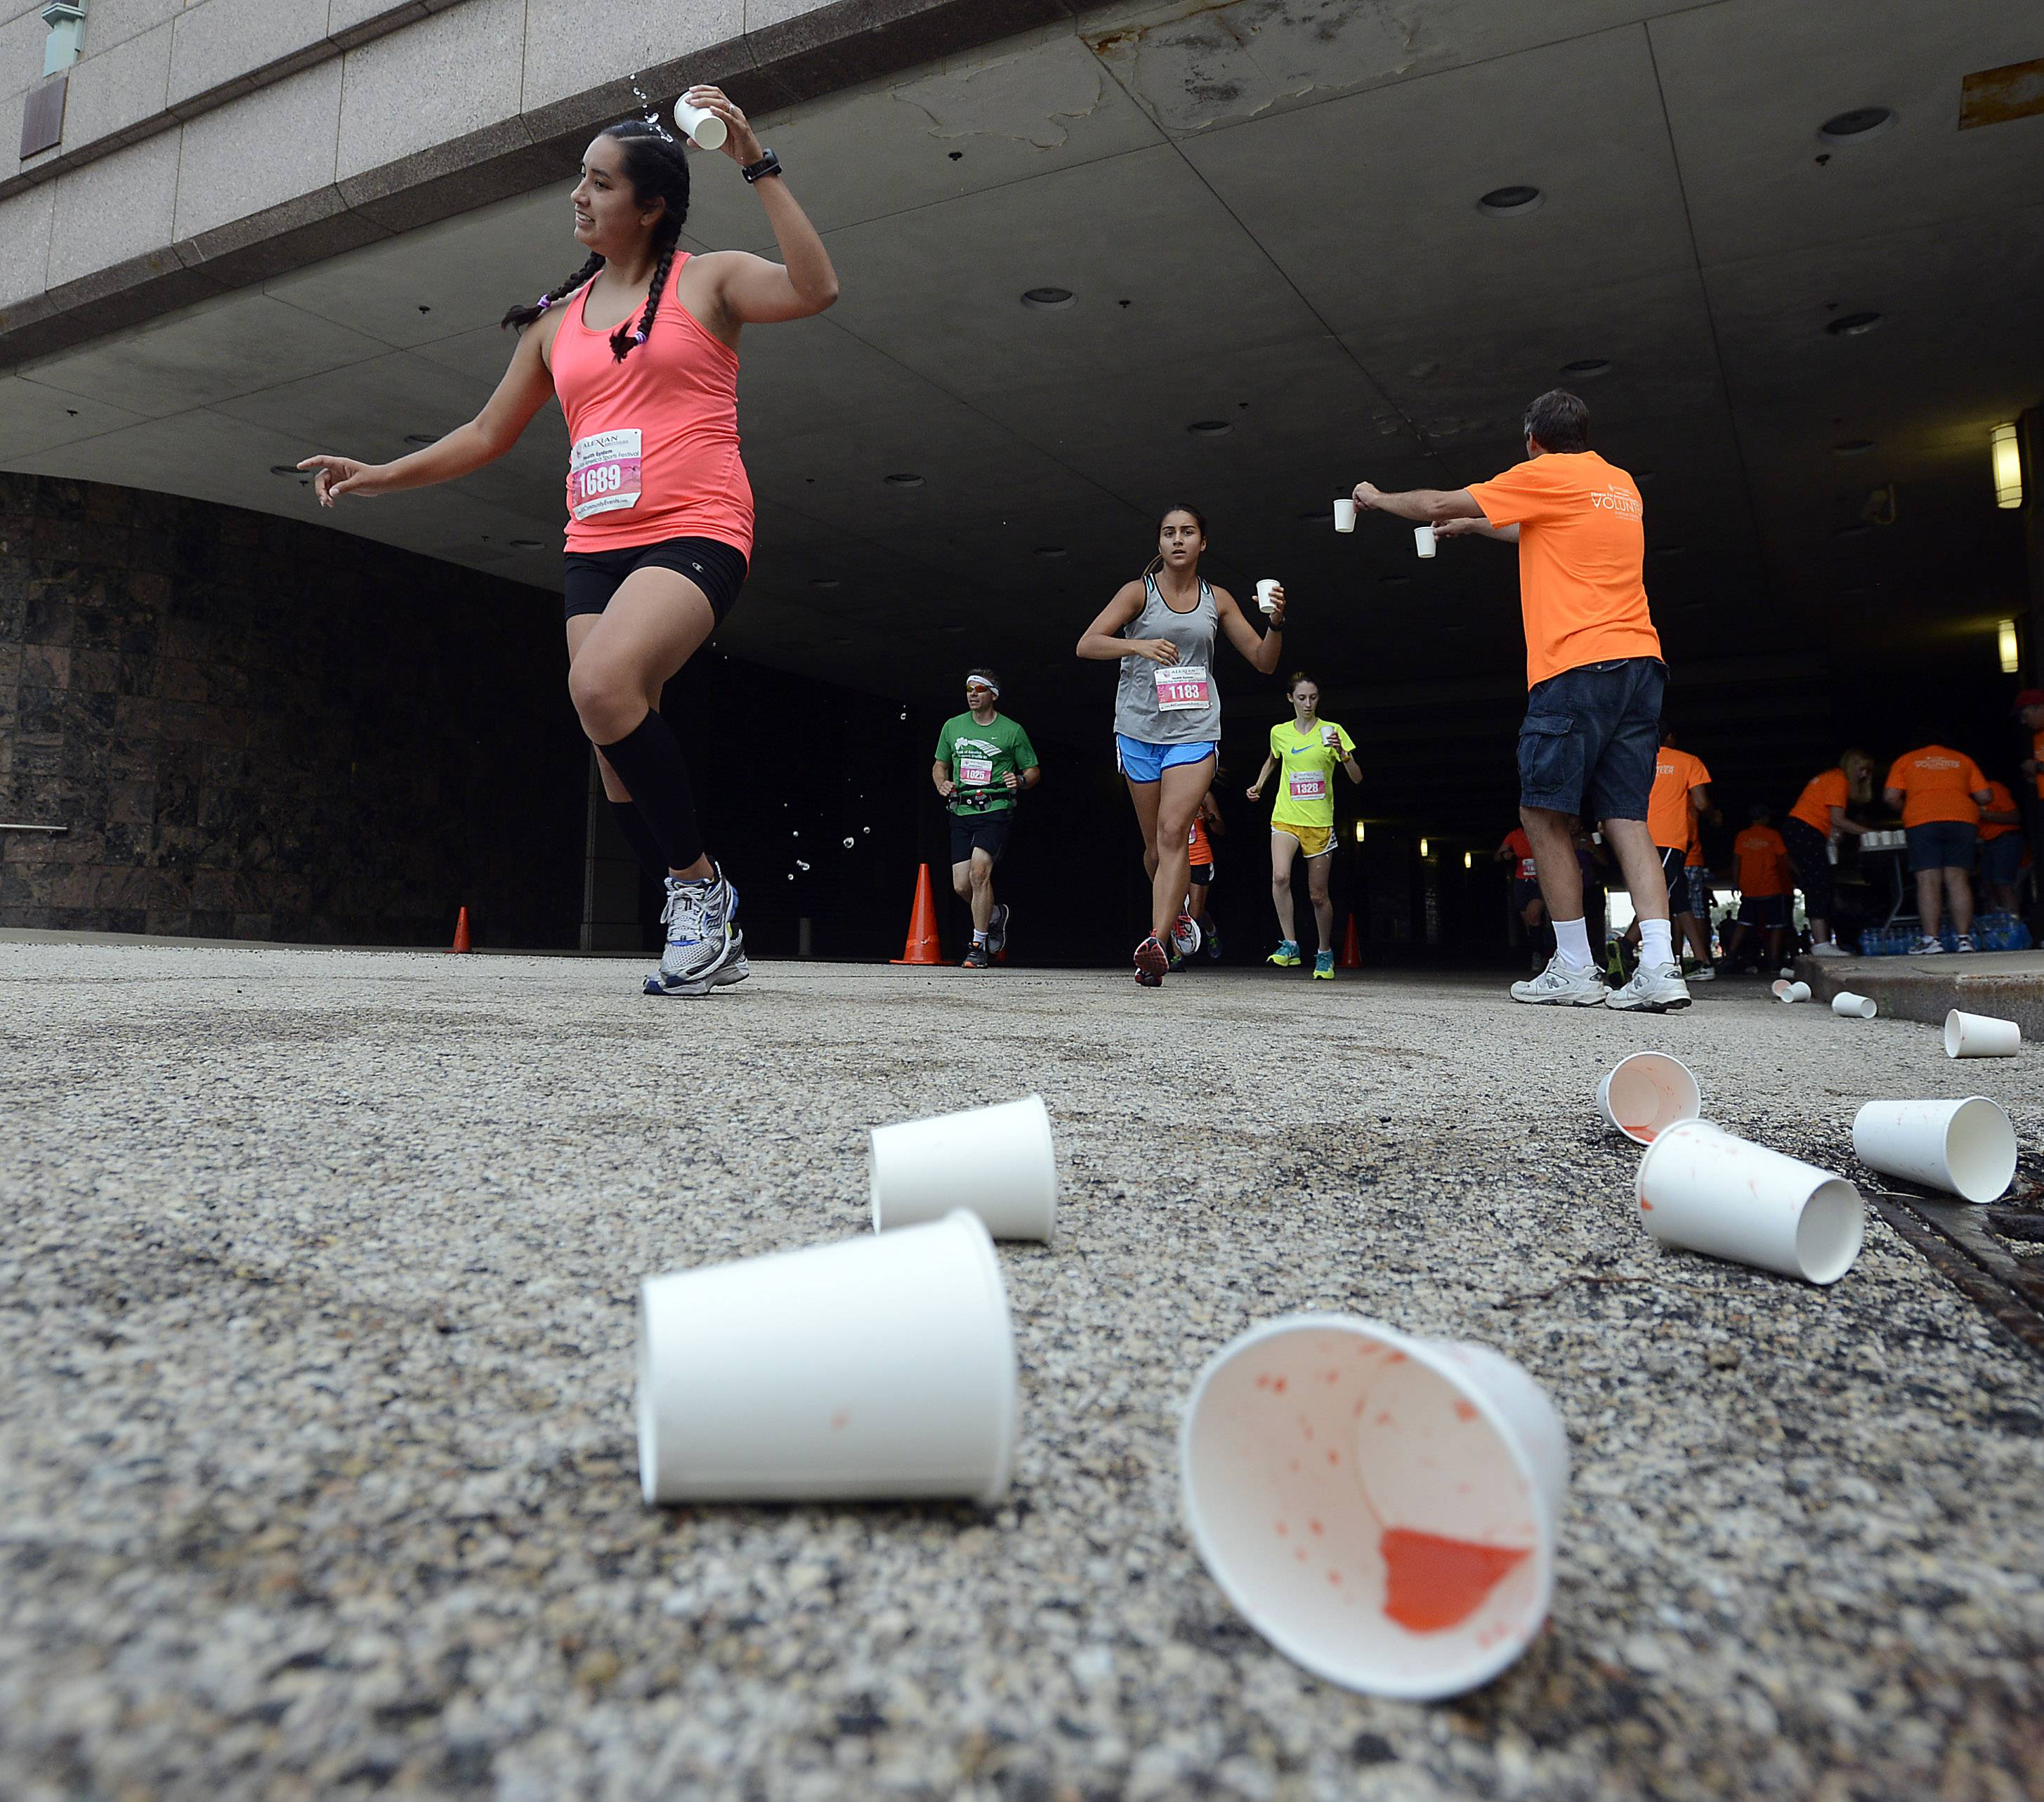 Runners in the half marathon gets some refreshment from the water station Saturday in the sixth annual Alexian Brothers Fitness for America Sports Festival in Hoffman Estates.